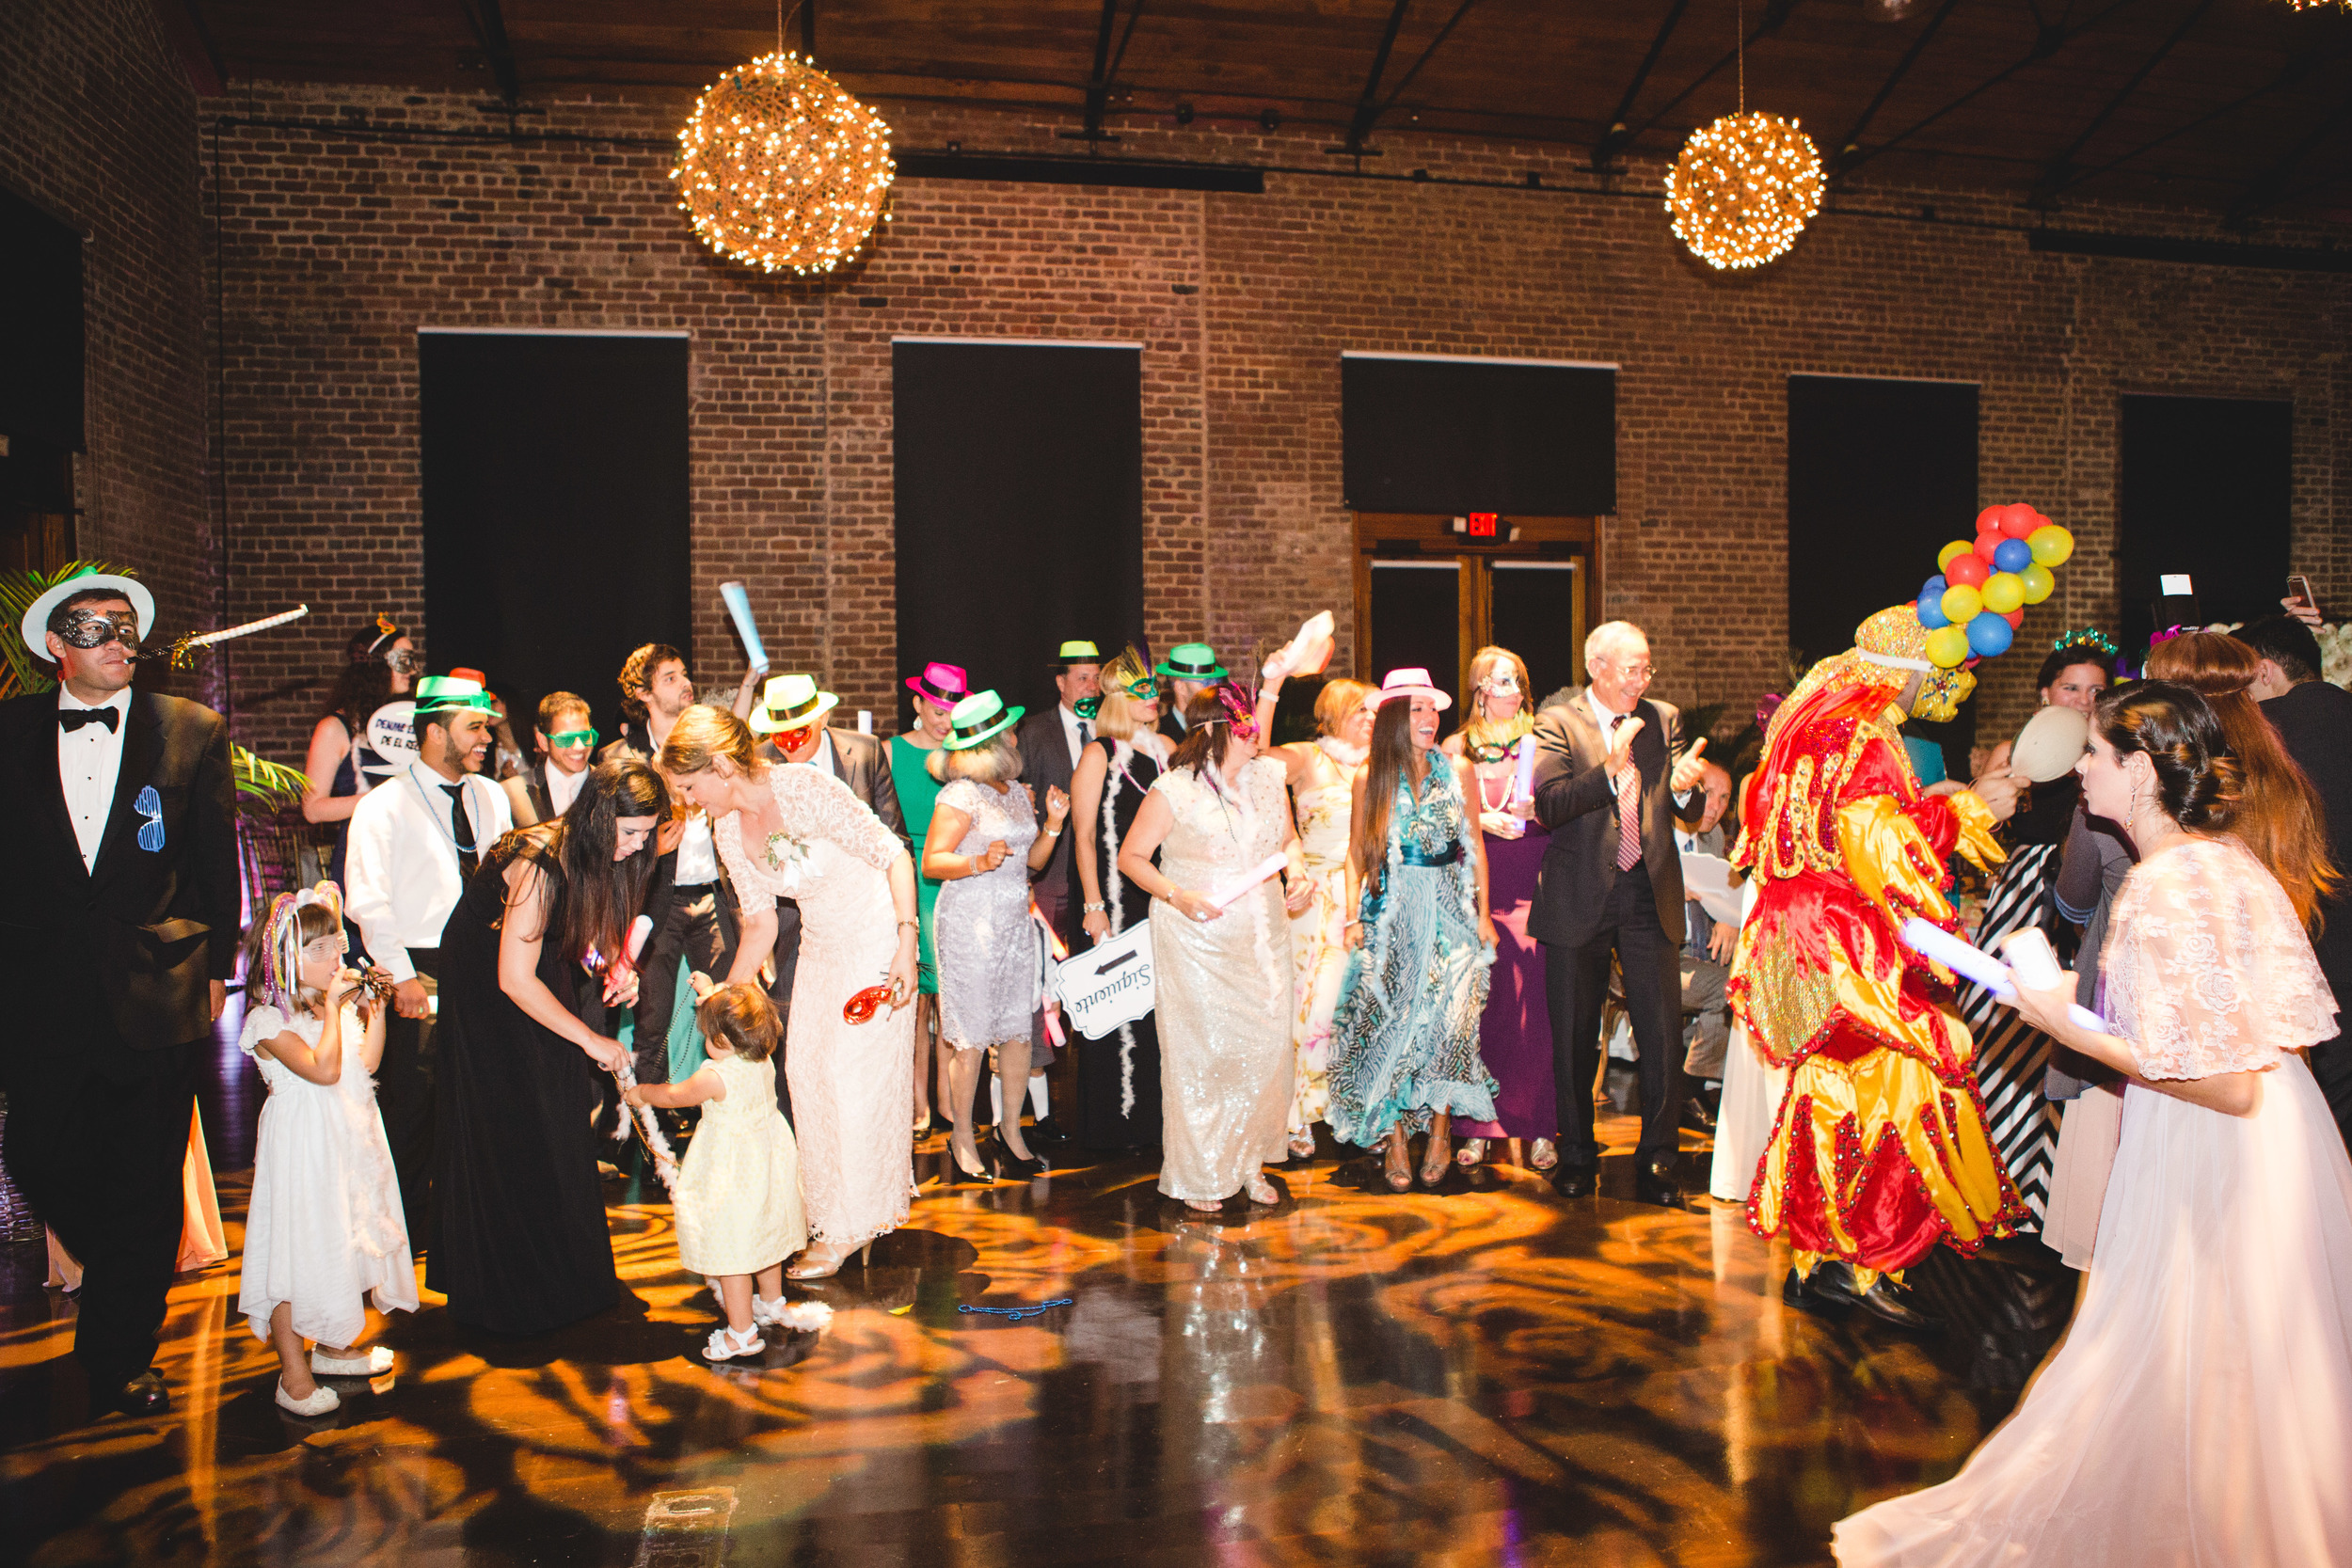 daniela-and-pedro-wedding-izzy-hudgins-photography-a-to-zinnias-whitfield-square-charles-h-morris-center-wedding-ivoyy-and-beau-bridal-boutique-dorie-hayley-paige-savannah-wedding-planner-savannah-bridal-boutique-savannah-weddings-54.jpg